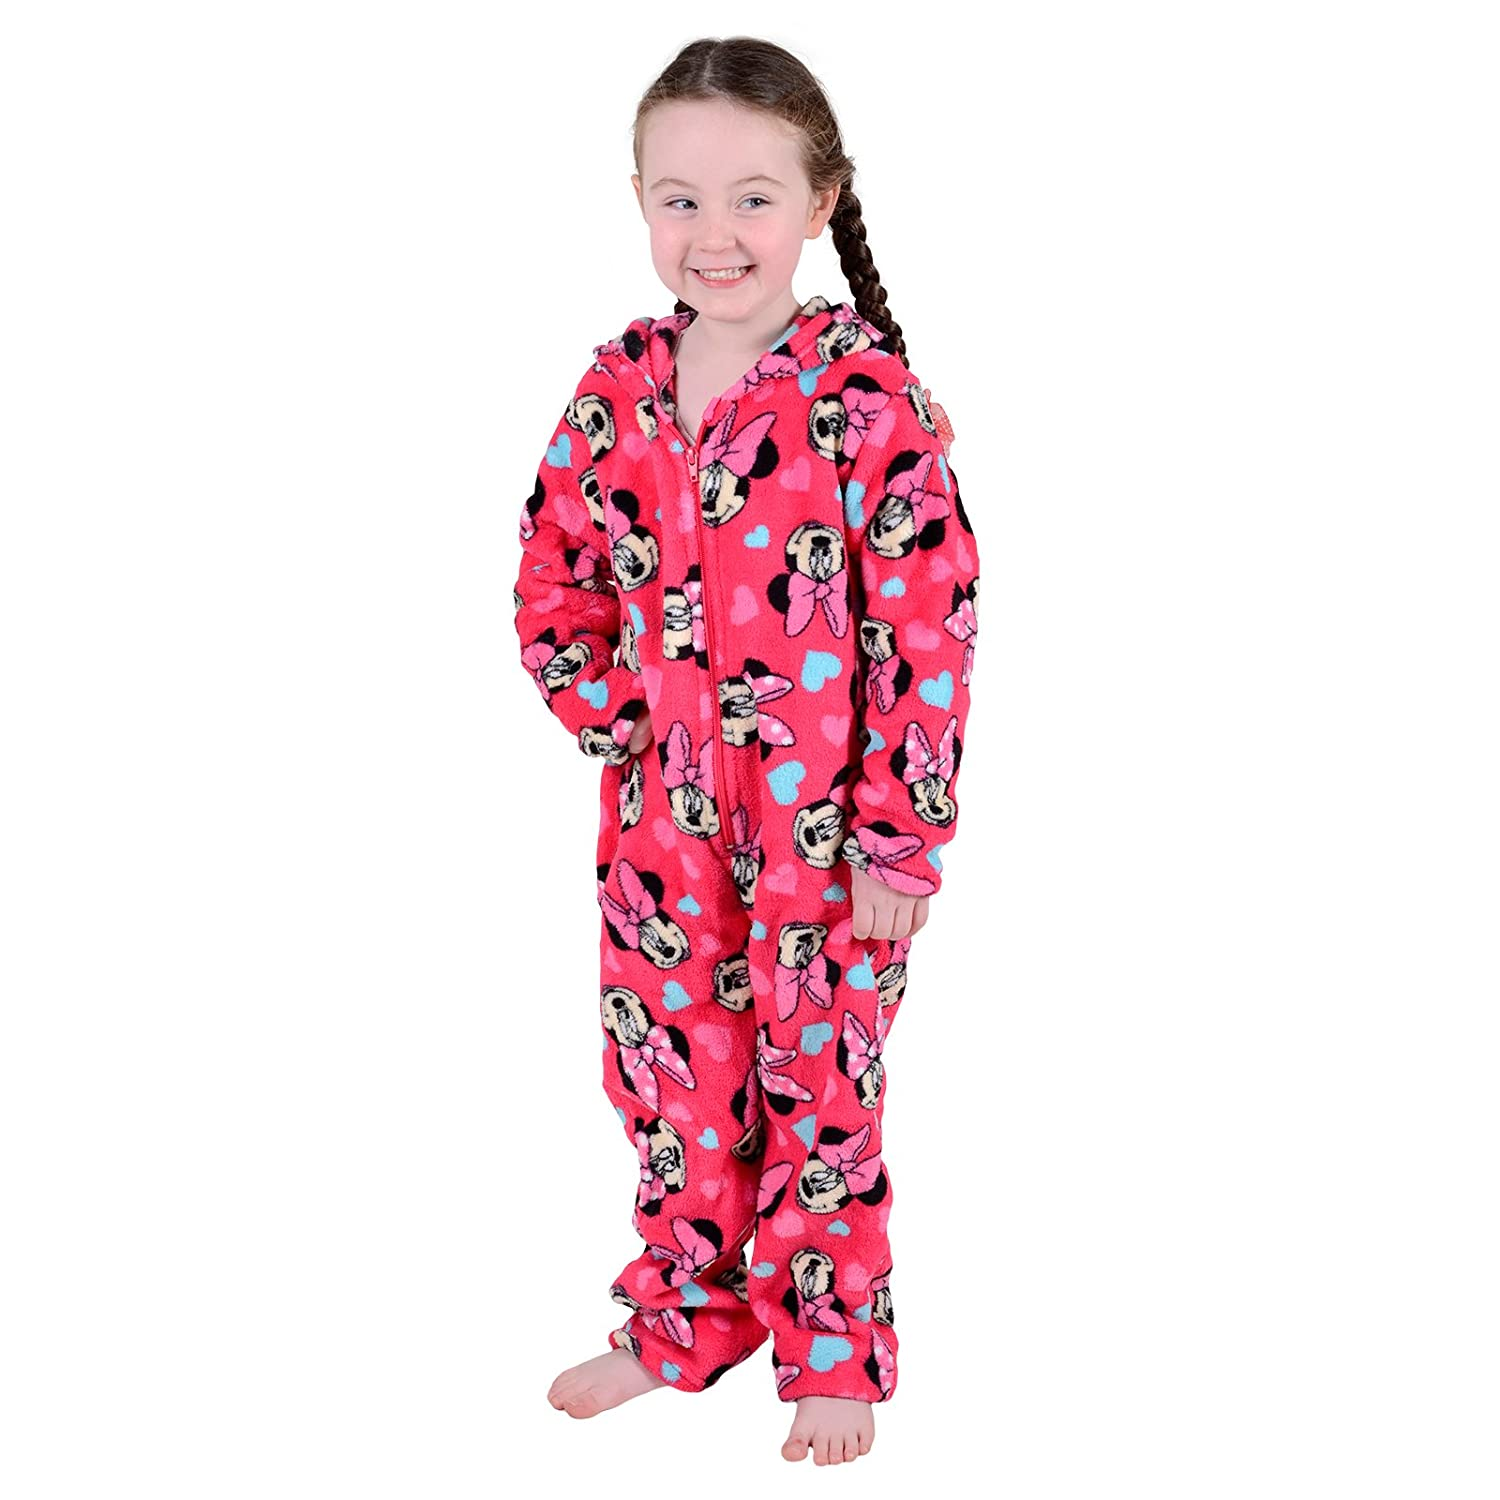 Disney Minnie Mouse Girls Onesie Pyjamas Soft All In One Jump Play Suit Ages 2-7